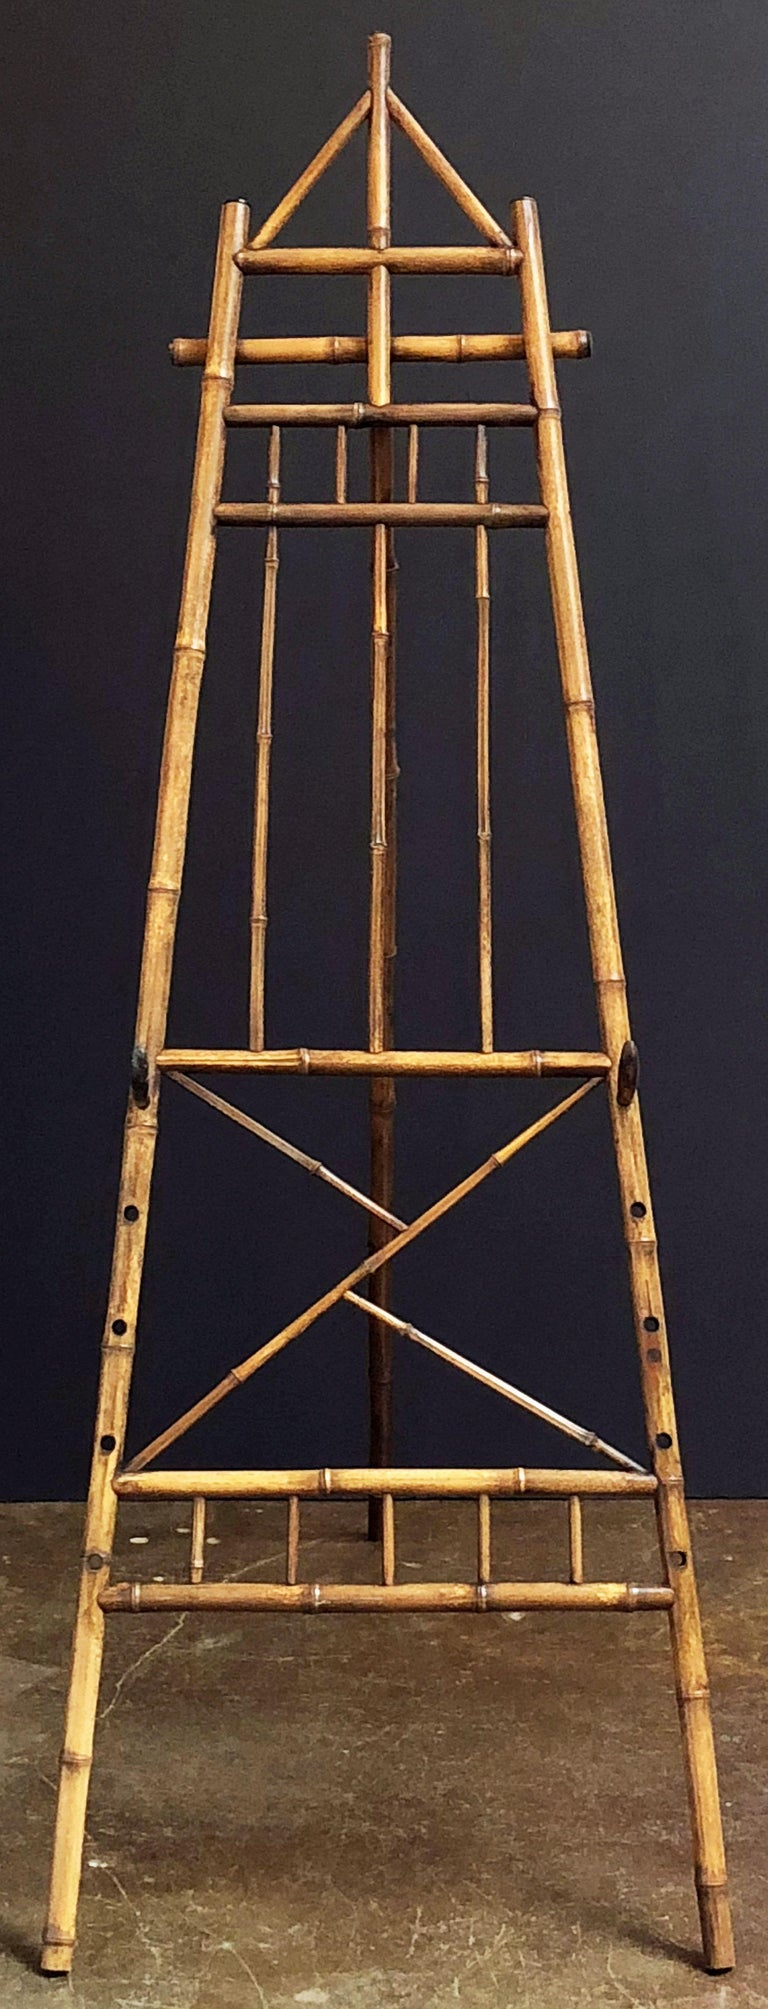 English Bamboo Display Easel From The Aesthetic Movement